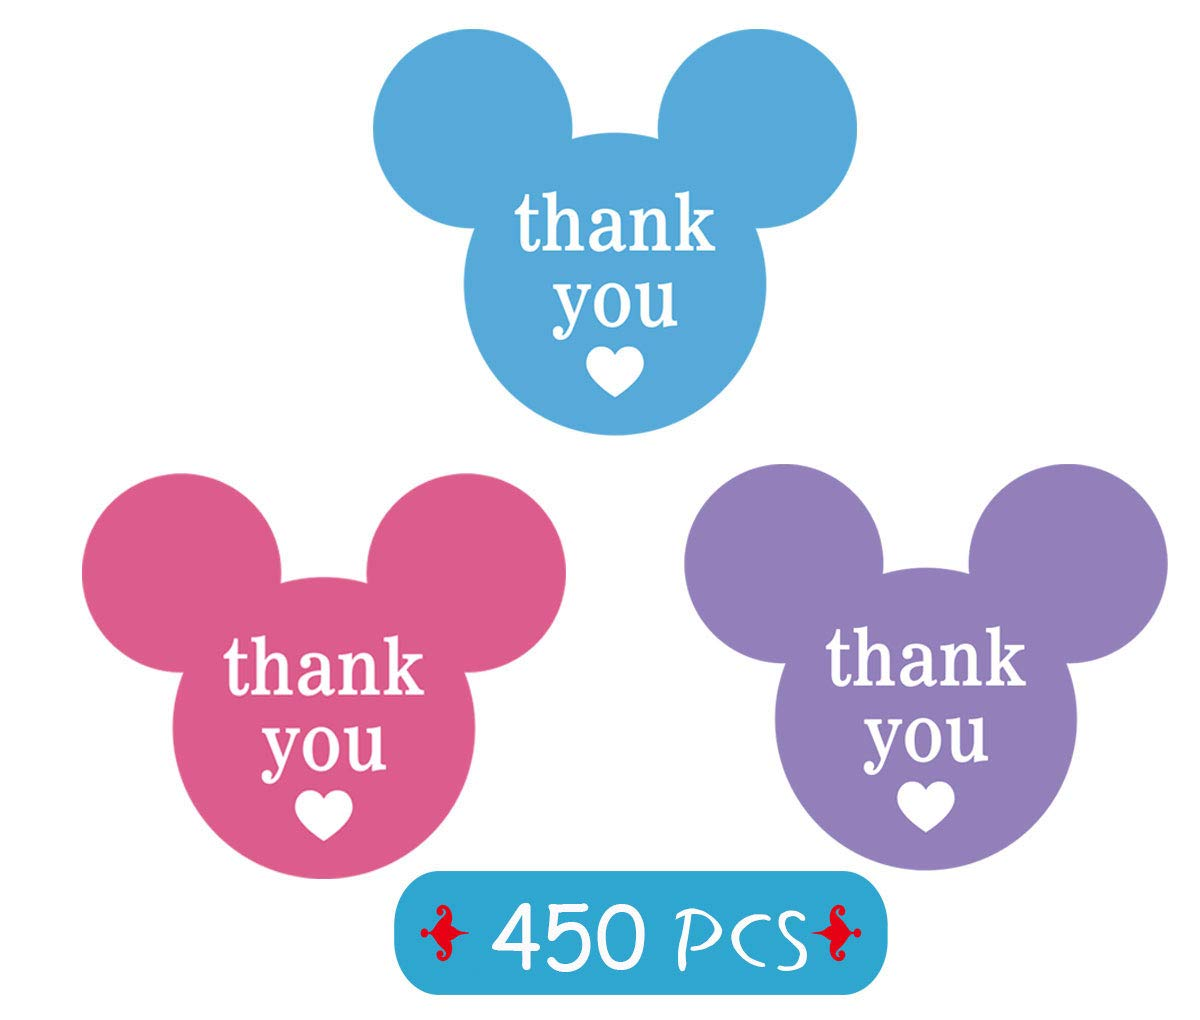 2.25 x 2 Mickey Minnie Colorful Thank You Stickers, Mickey Mouse Ear Labels Thank You Labels with Heart for Decorations, Parties, Envelope Seals, Gift Tags, 450 Labels Pack Blue, Pink, Purple